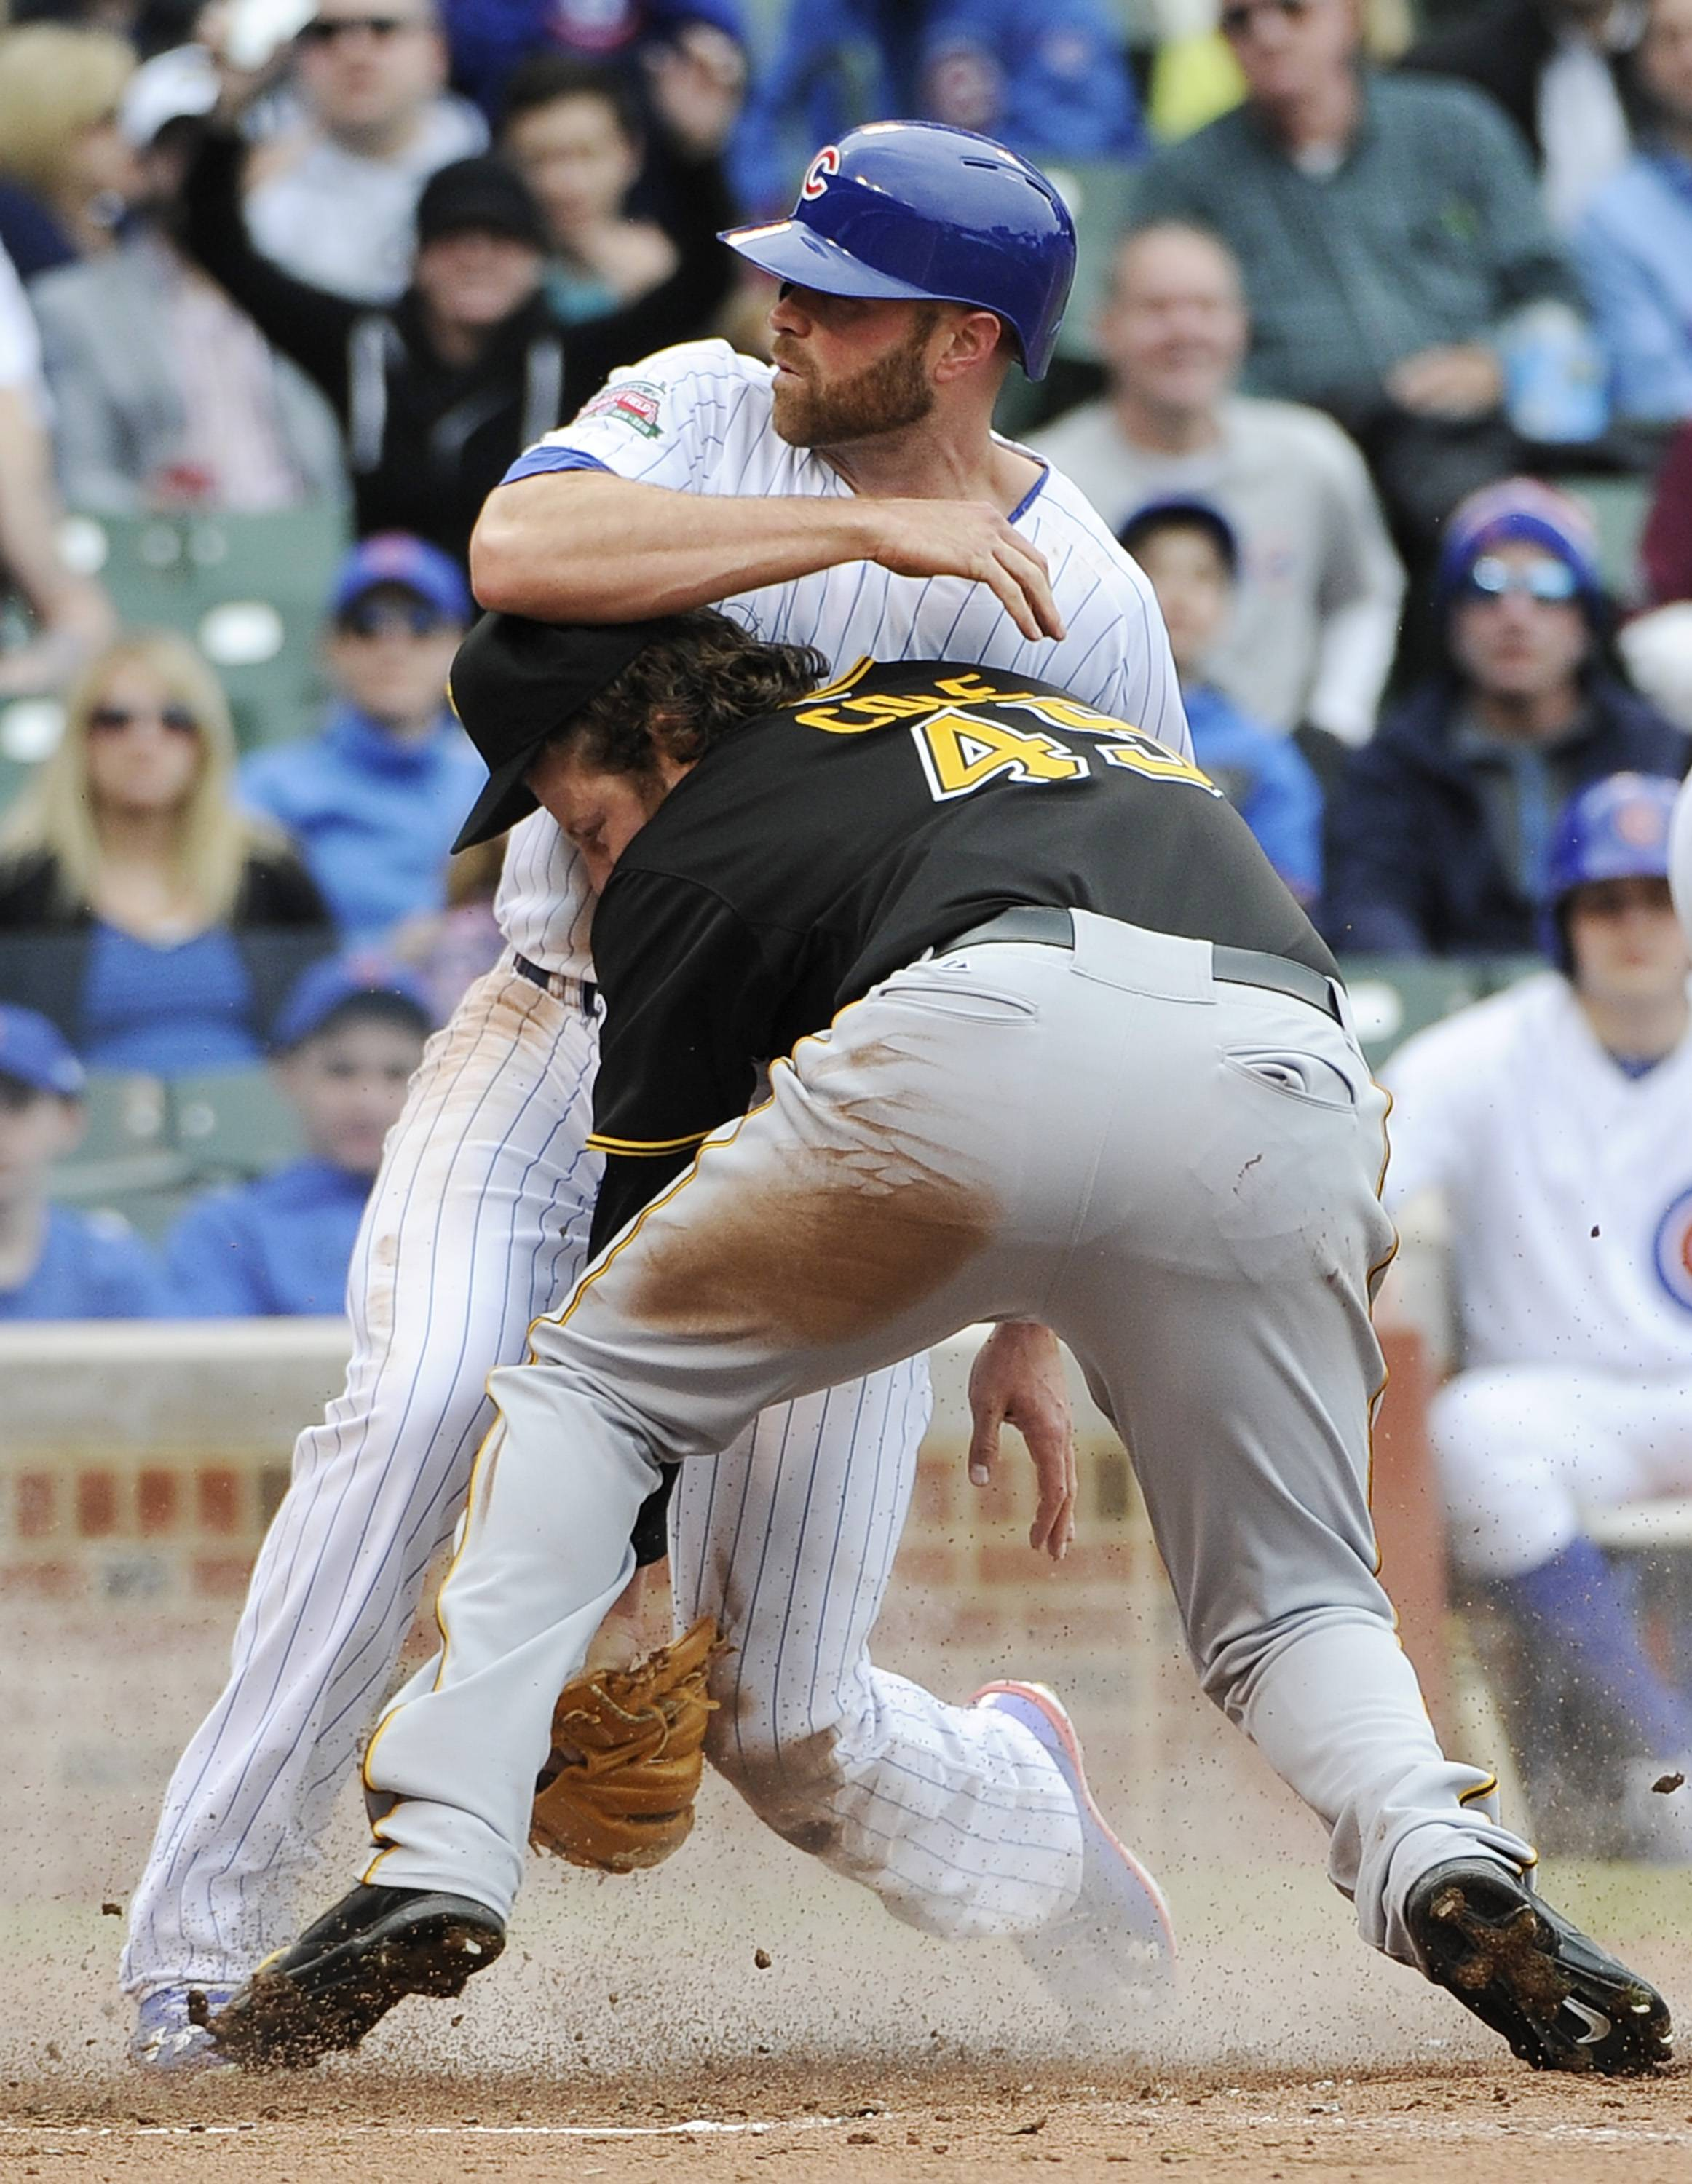 Nate Schierholtz, top, scores on a wild pitch as Pittsburgh Pirates starting pitcher Gerrit Cole (45) makes a late tag during the fourth inning of a baseball game on Thursday, April 10, 2014 in Chicago.